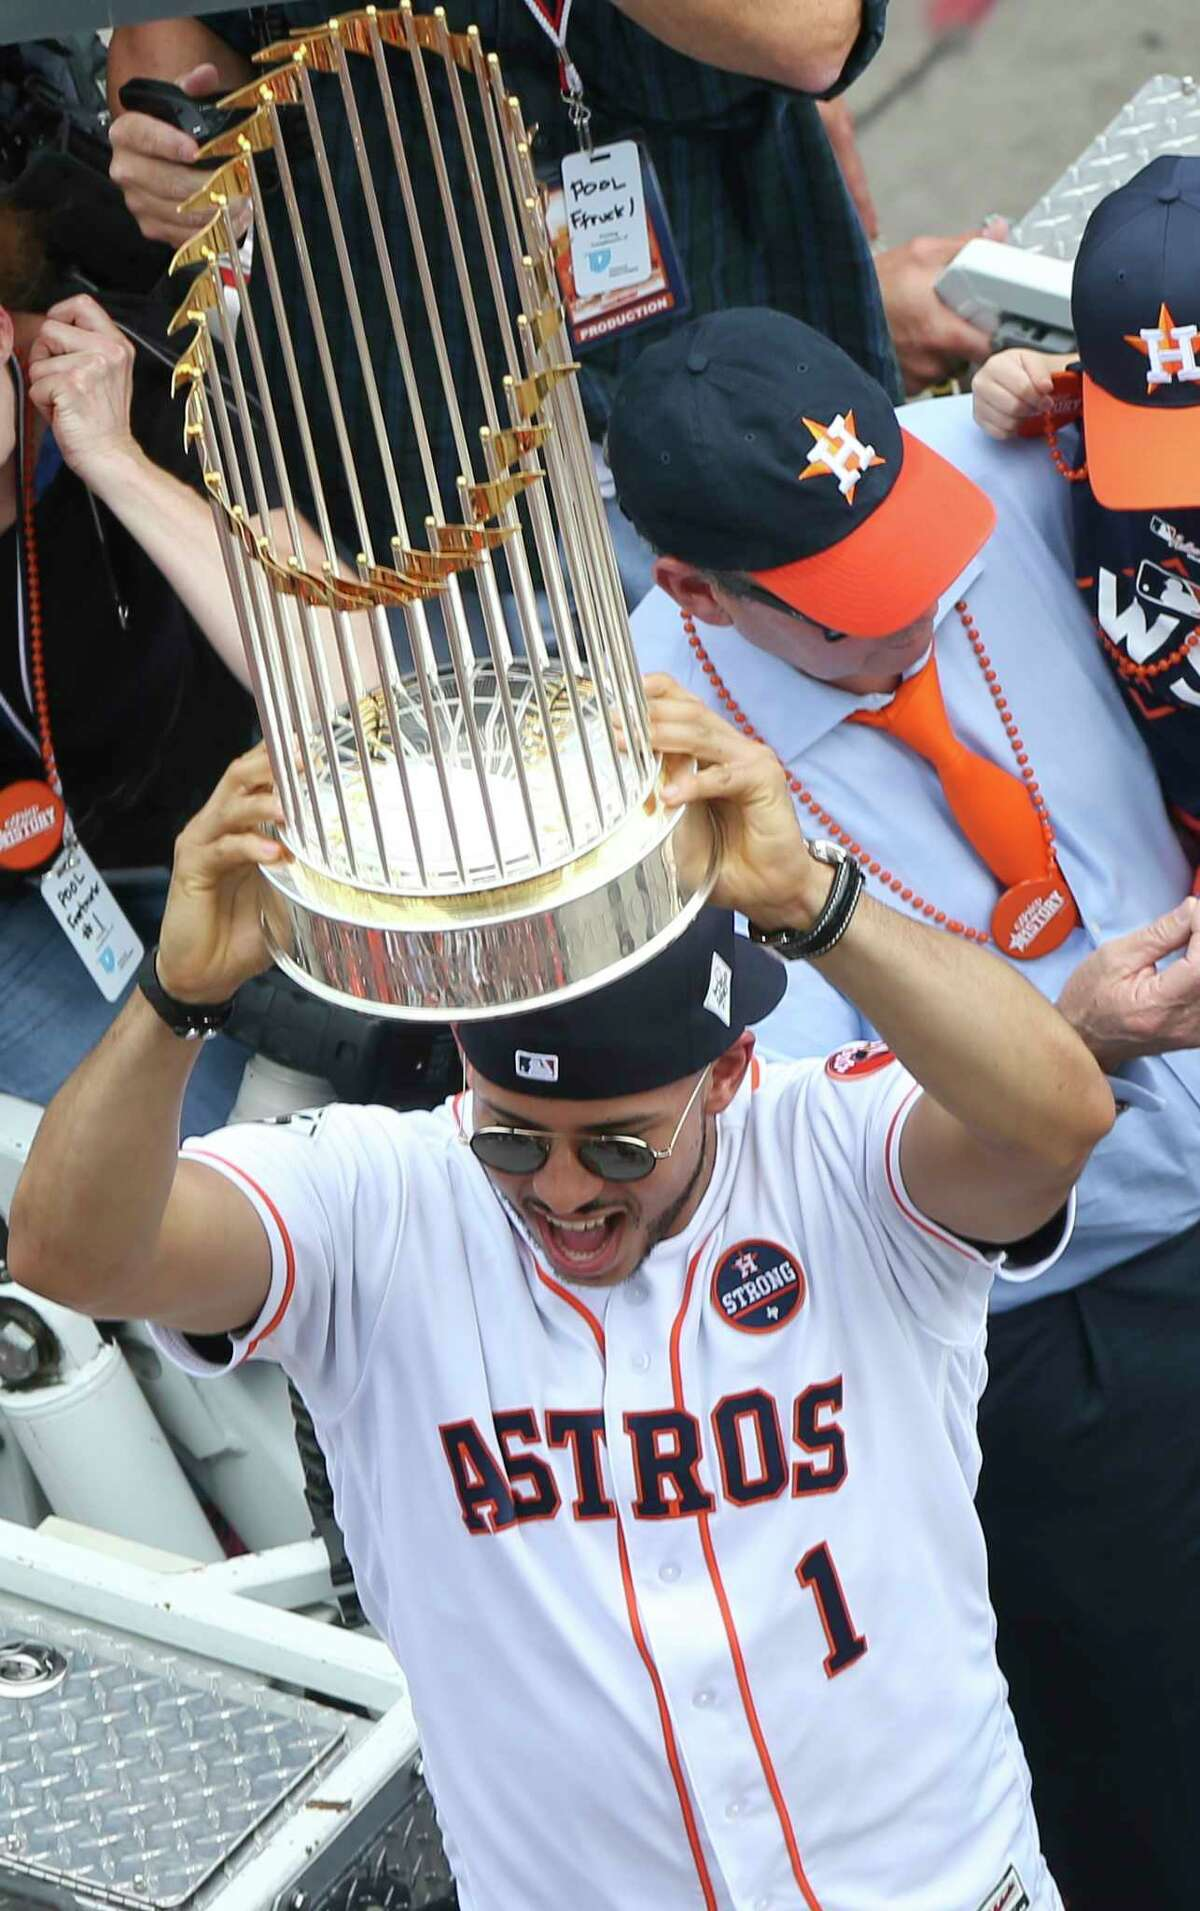 Houston Astros player Carlos Correa cheers the crowd with the World Series trophy during the Astros World Series Parade at the intersection of Milan and Polk Streets Friday, Nov. 3, 2017, in Houston.